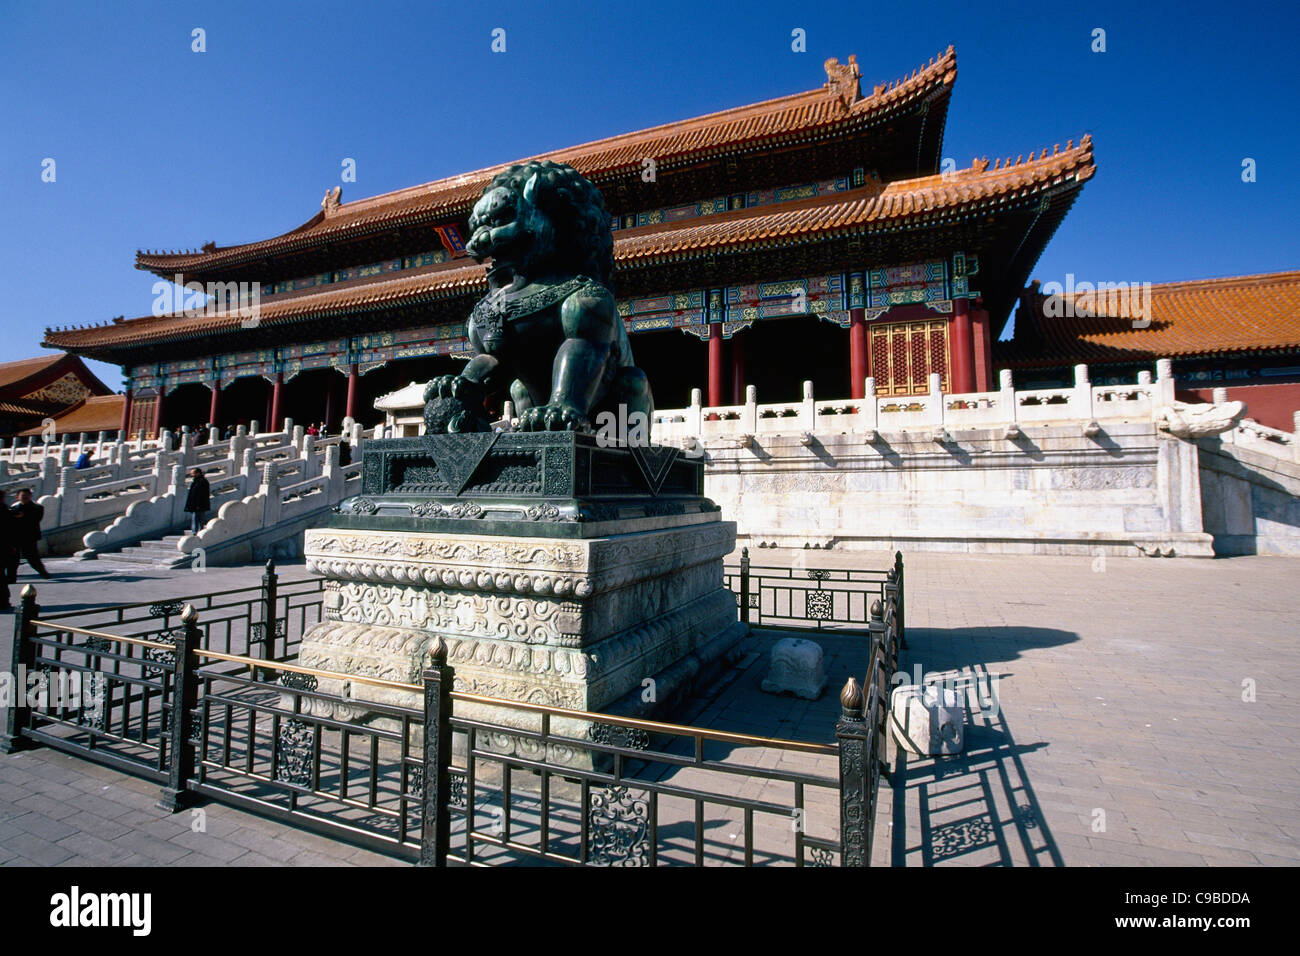 Chinese Male Imperial Guardian Lion Sculpture in front of the Hall of Supreme Harmony,Forbidden City, Beijing, China - Stock Image